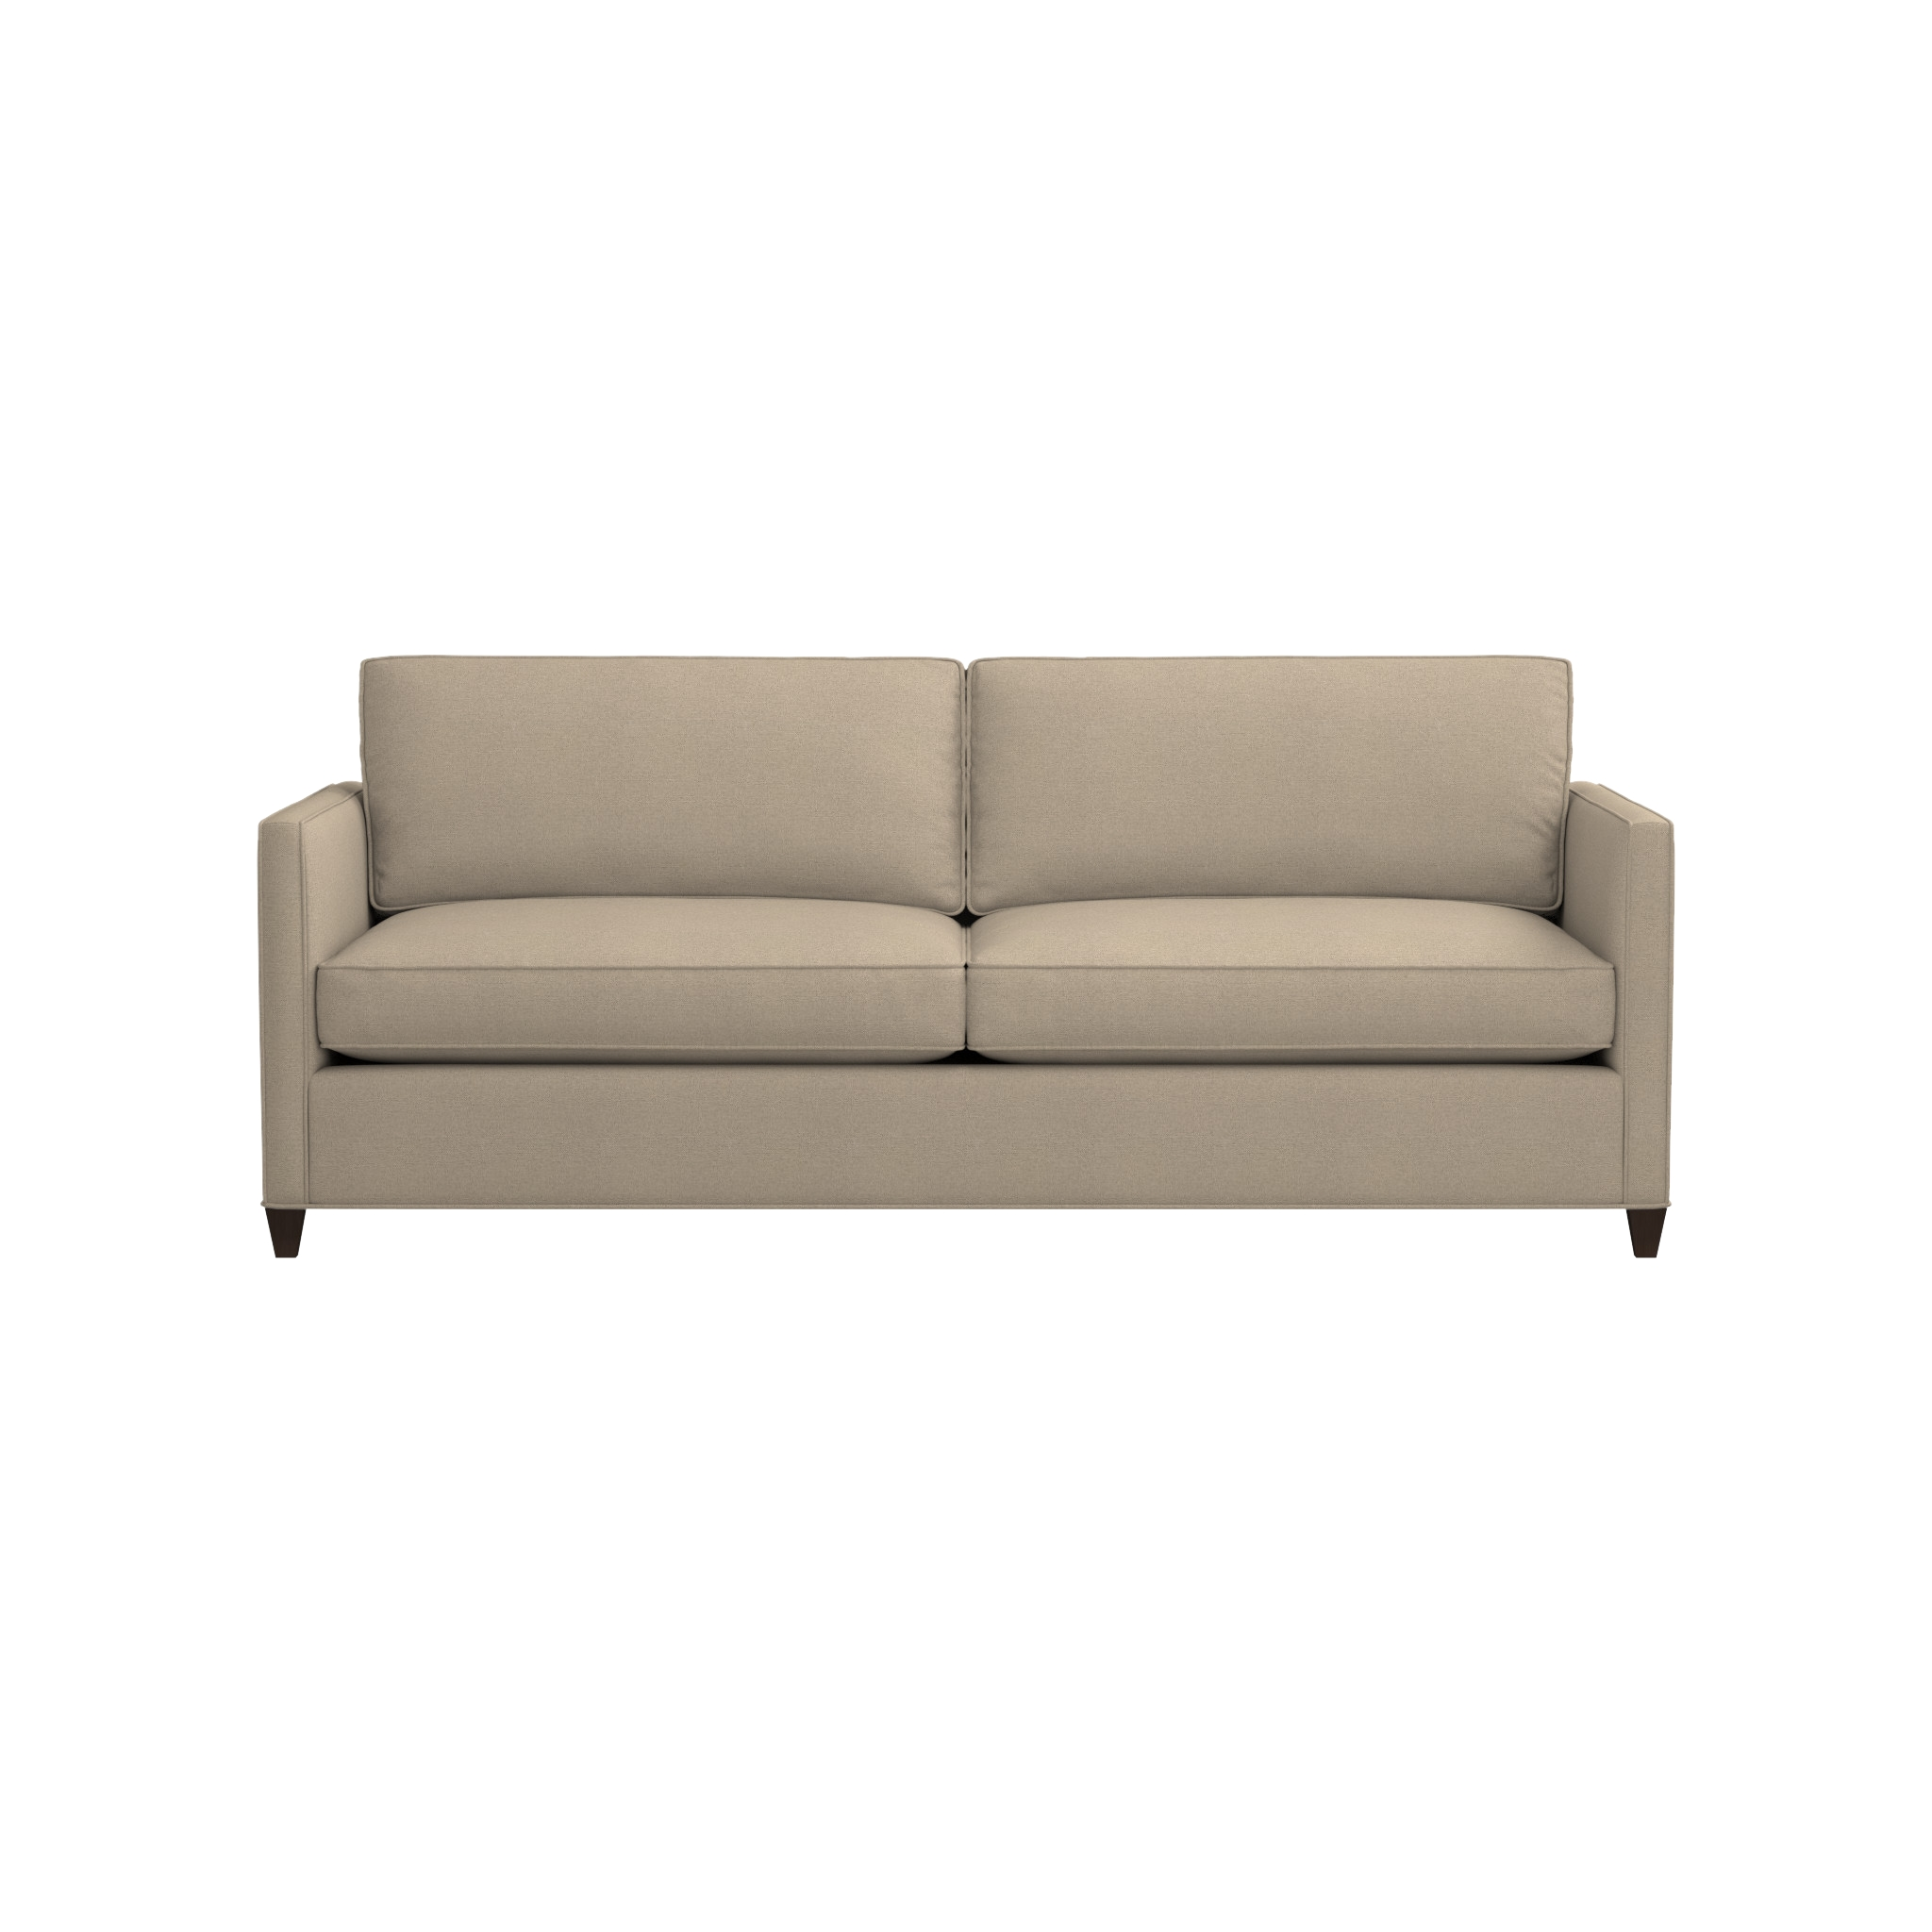 Furniture: Camden Sofa With Classic Style For Your Home throughout Sears Sofa (Image 3 of 25)